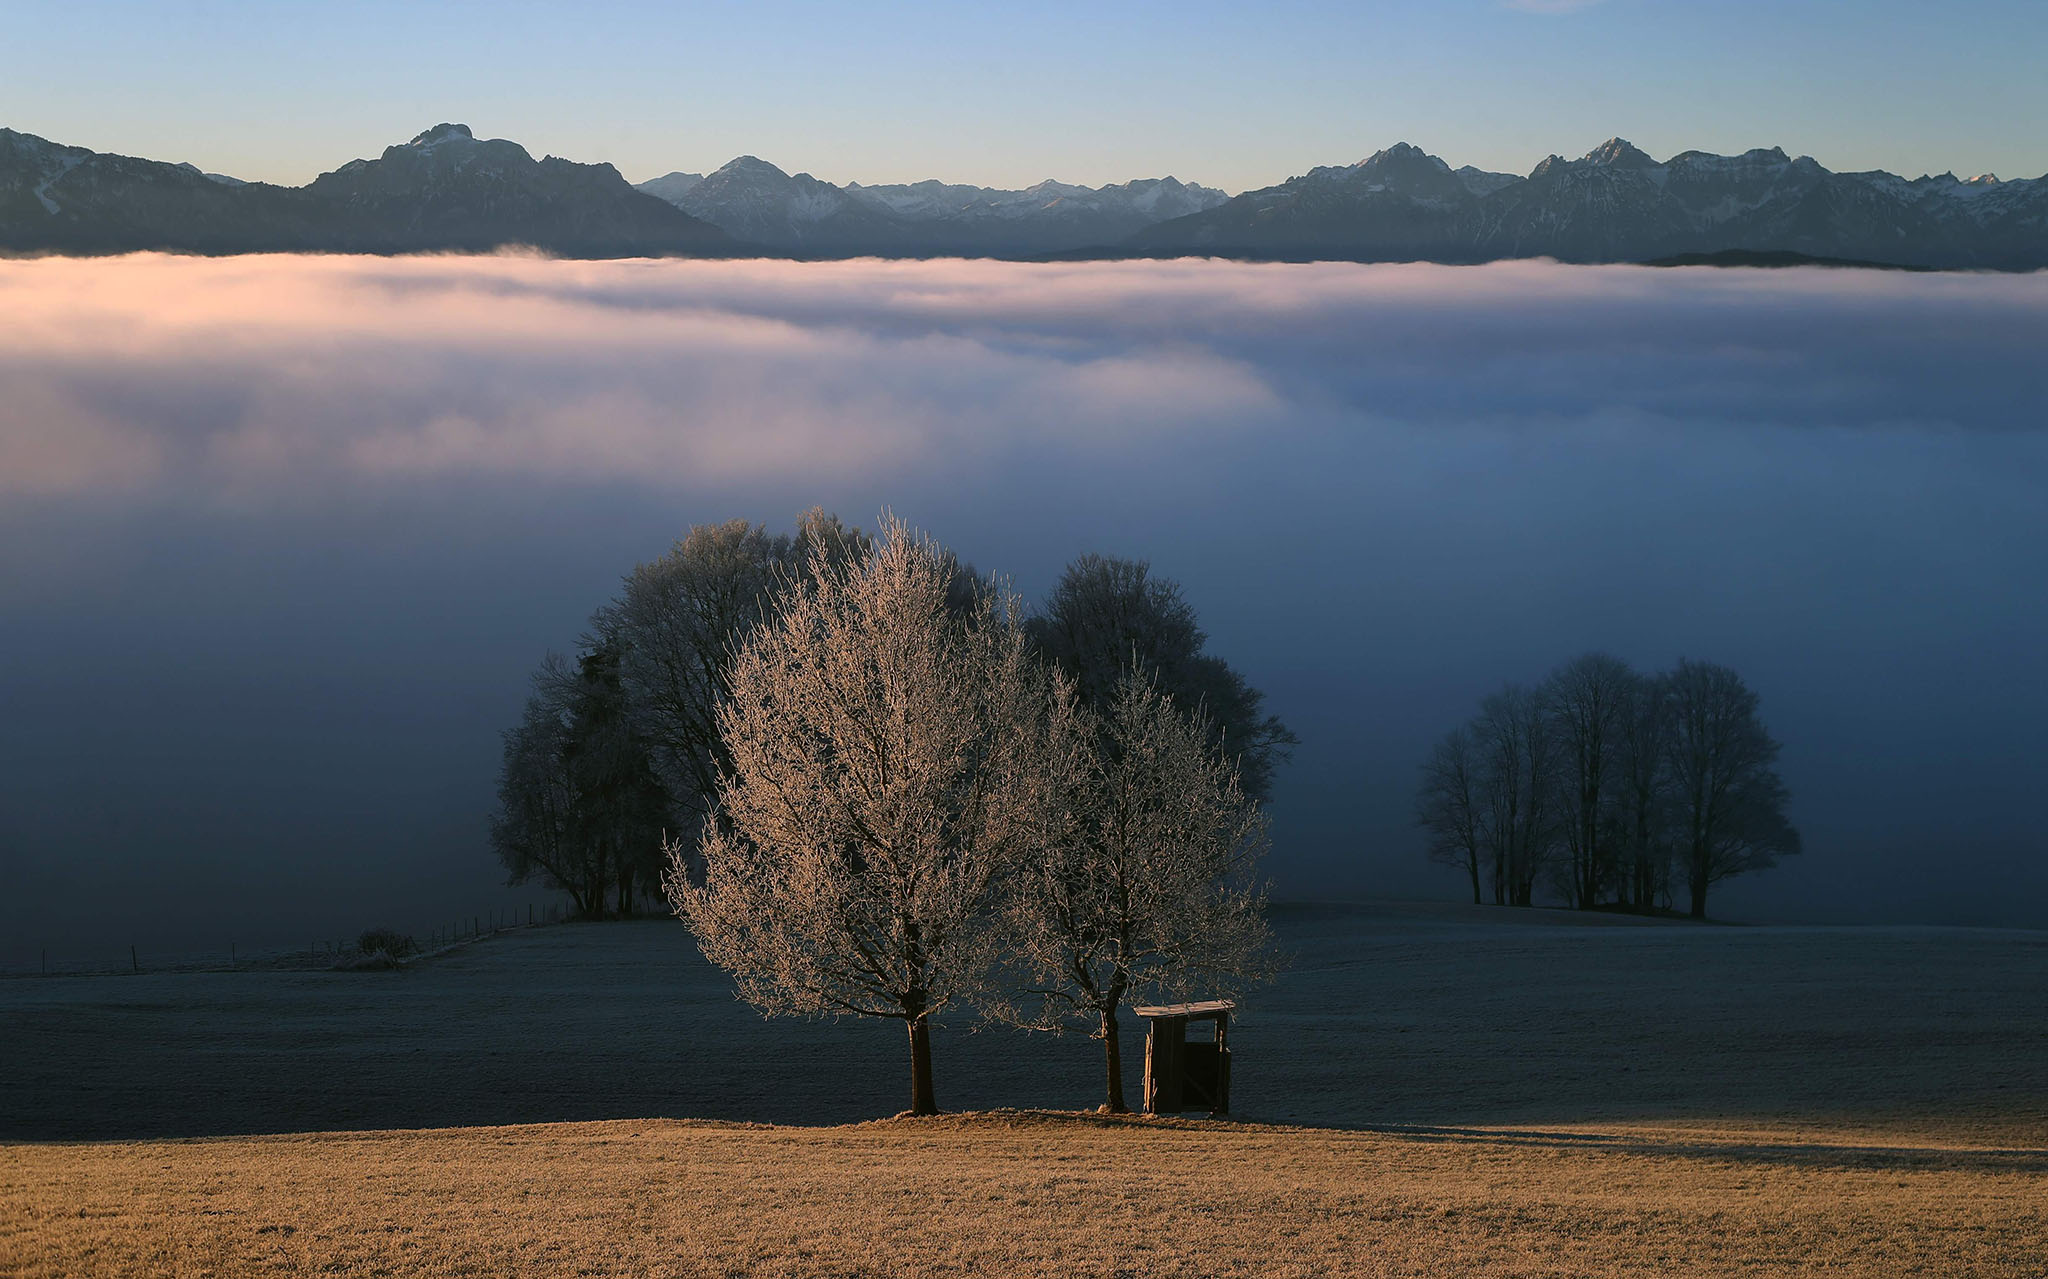 The pre-Alpine region near Bernbeuren, southern Germany, is pictured during the sunrise on December 16, 2016. / AFP PHOTO / dpa / Karl-Josef Hildenbrand / Germany OUTKARL-JOSEF H